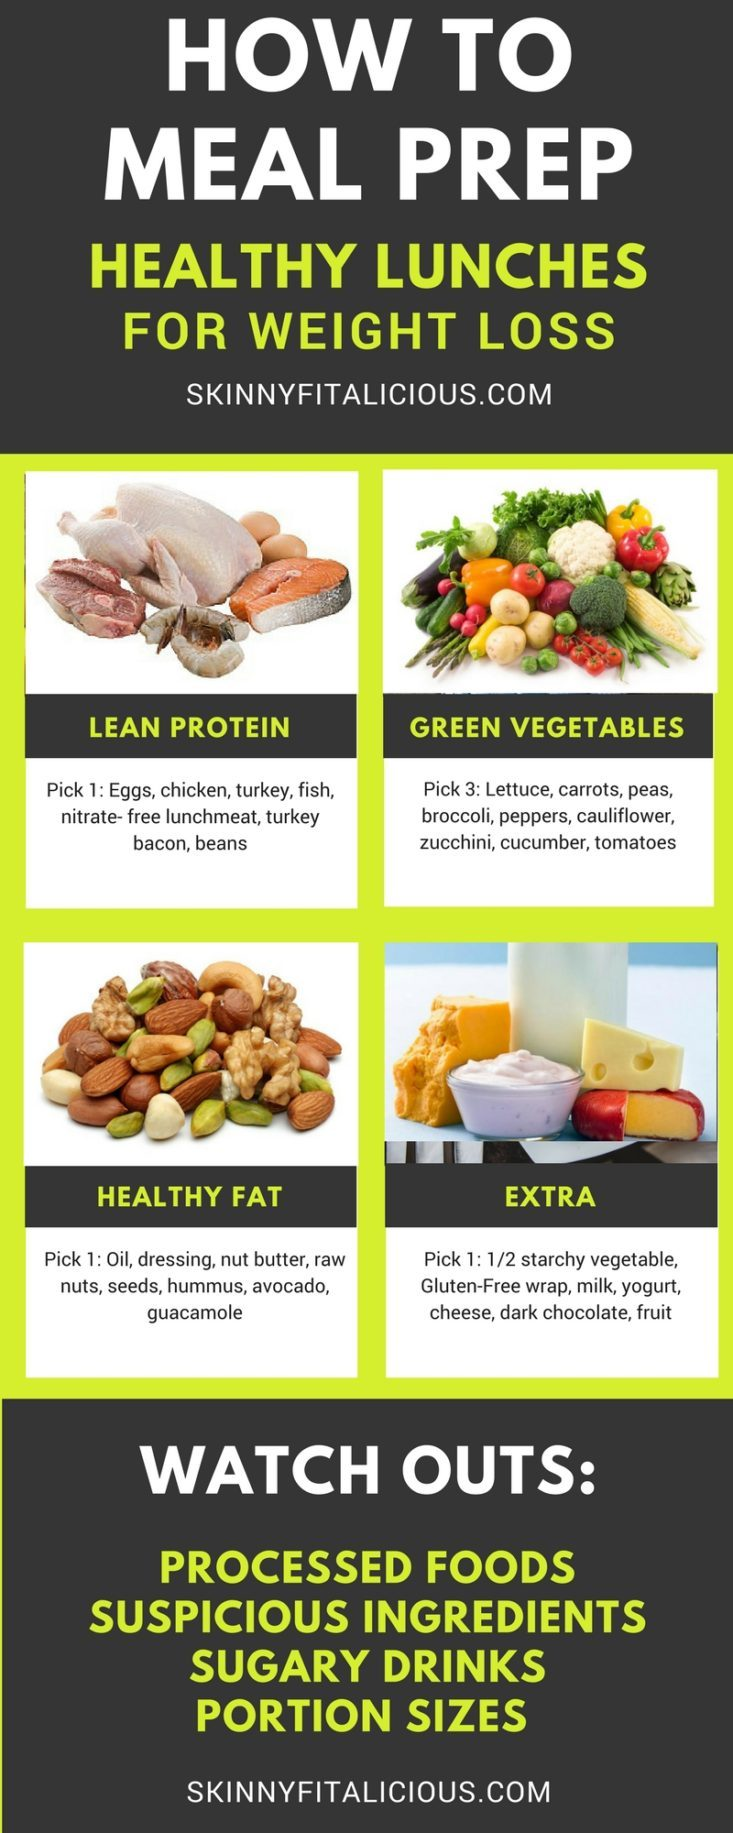 How To Meal Prep Healthy Lunches For Weight Loss As Well Tips Pairing Foods